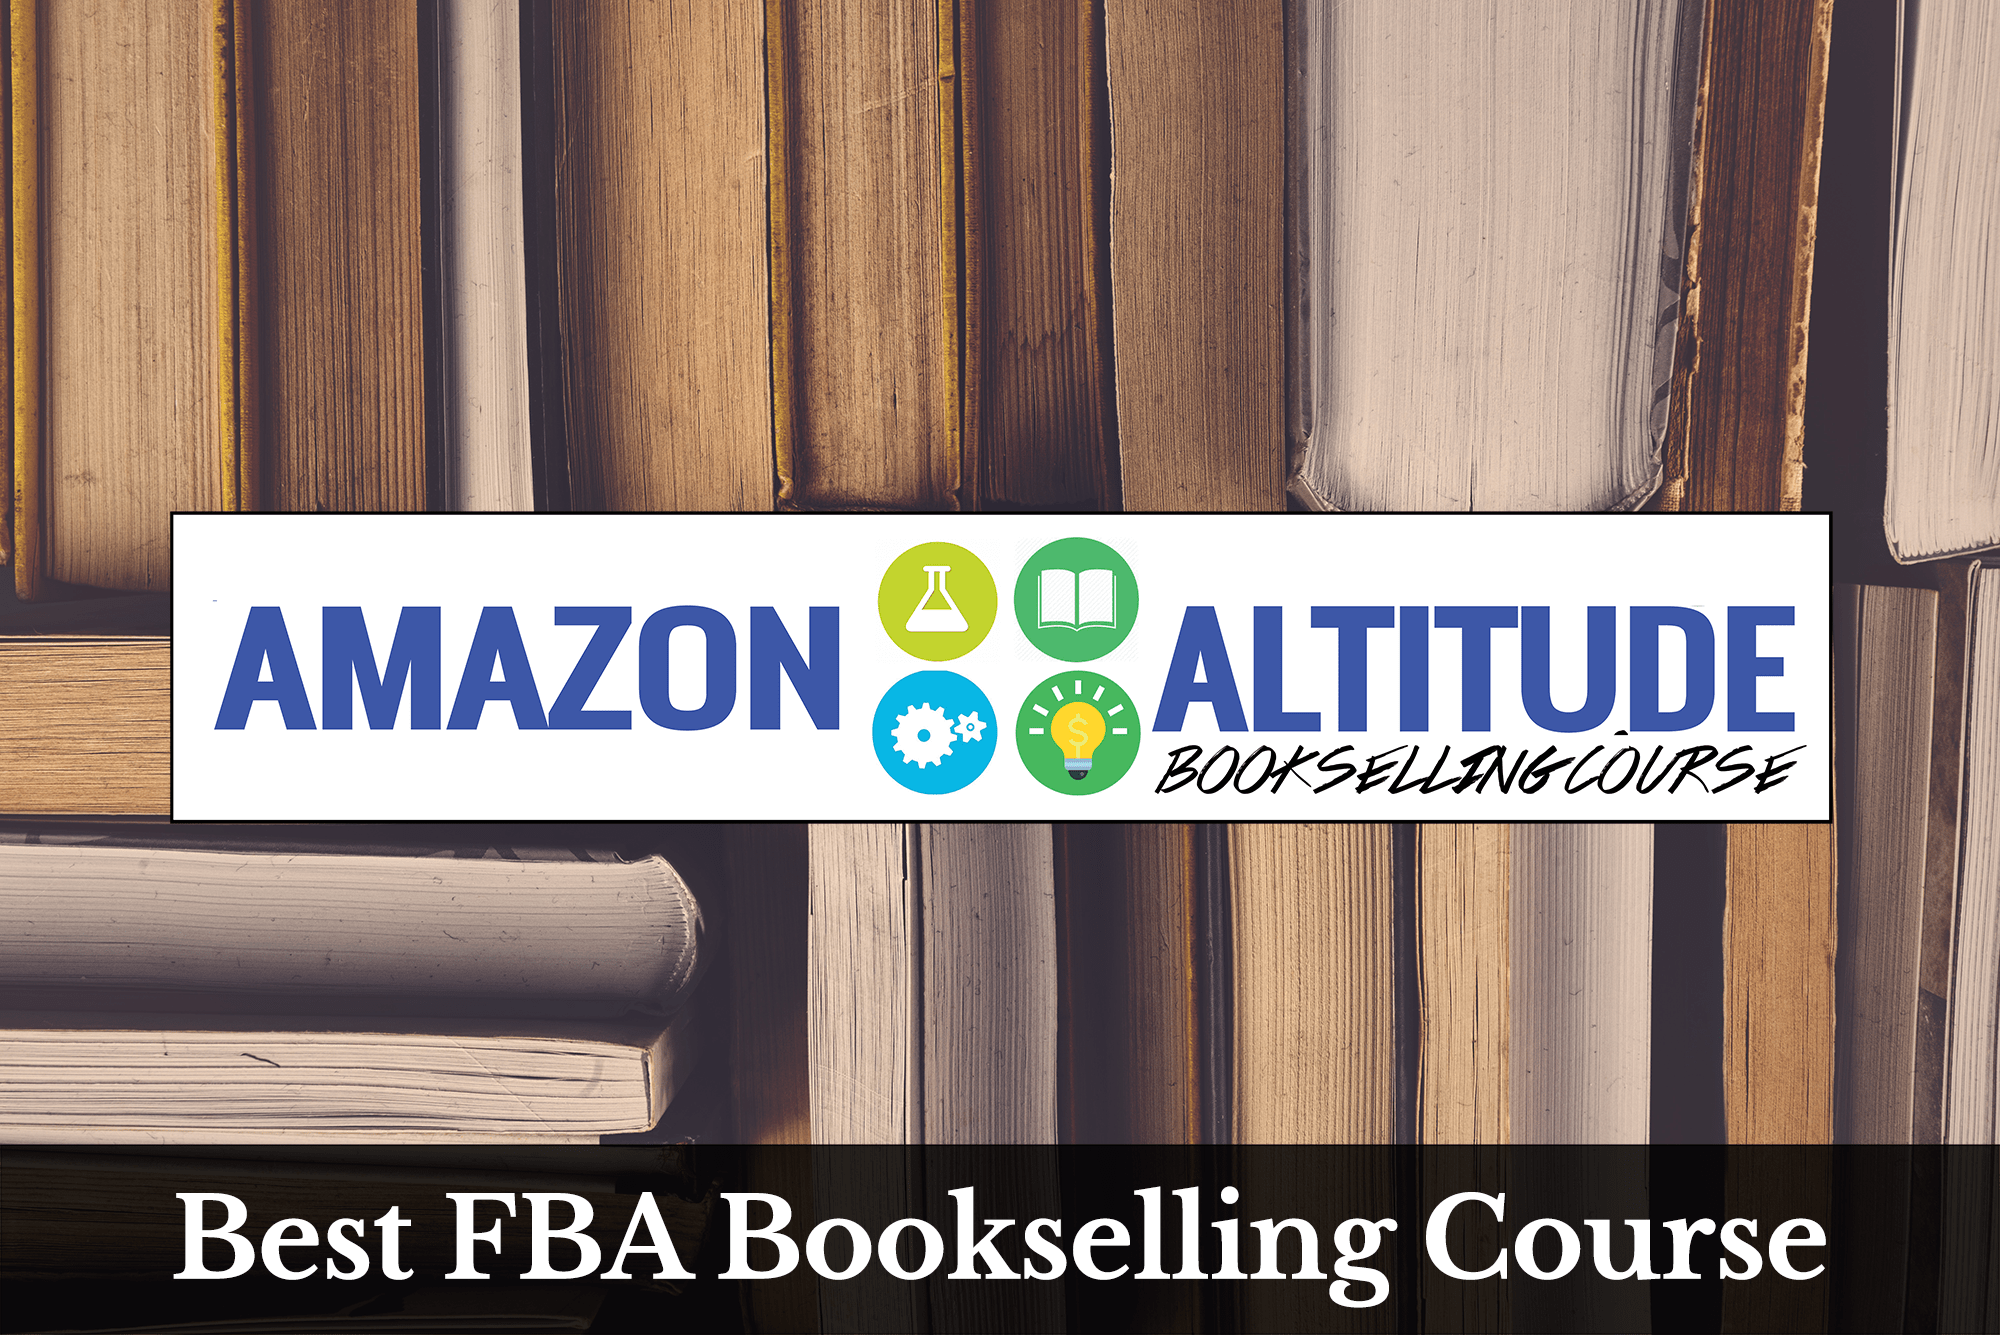 Best FBA Bookselling Course